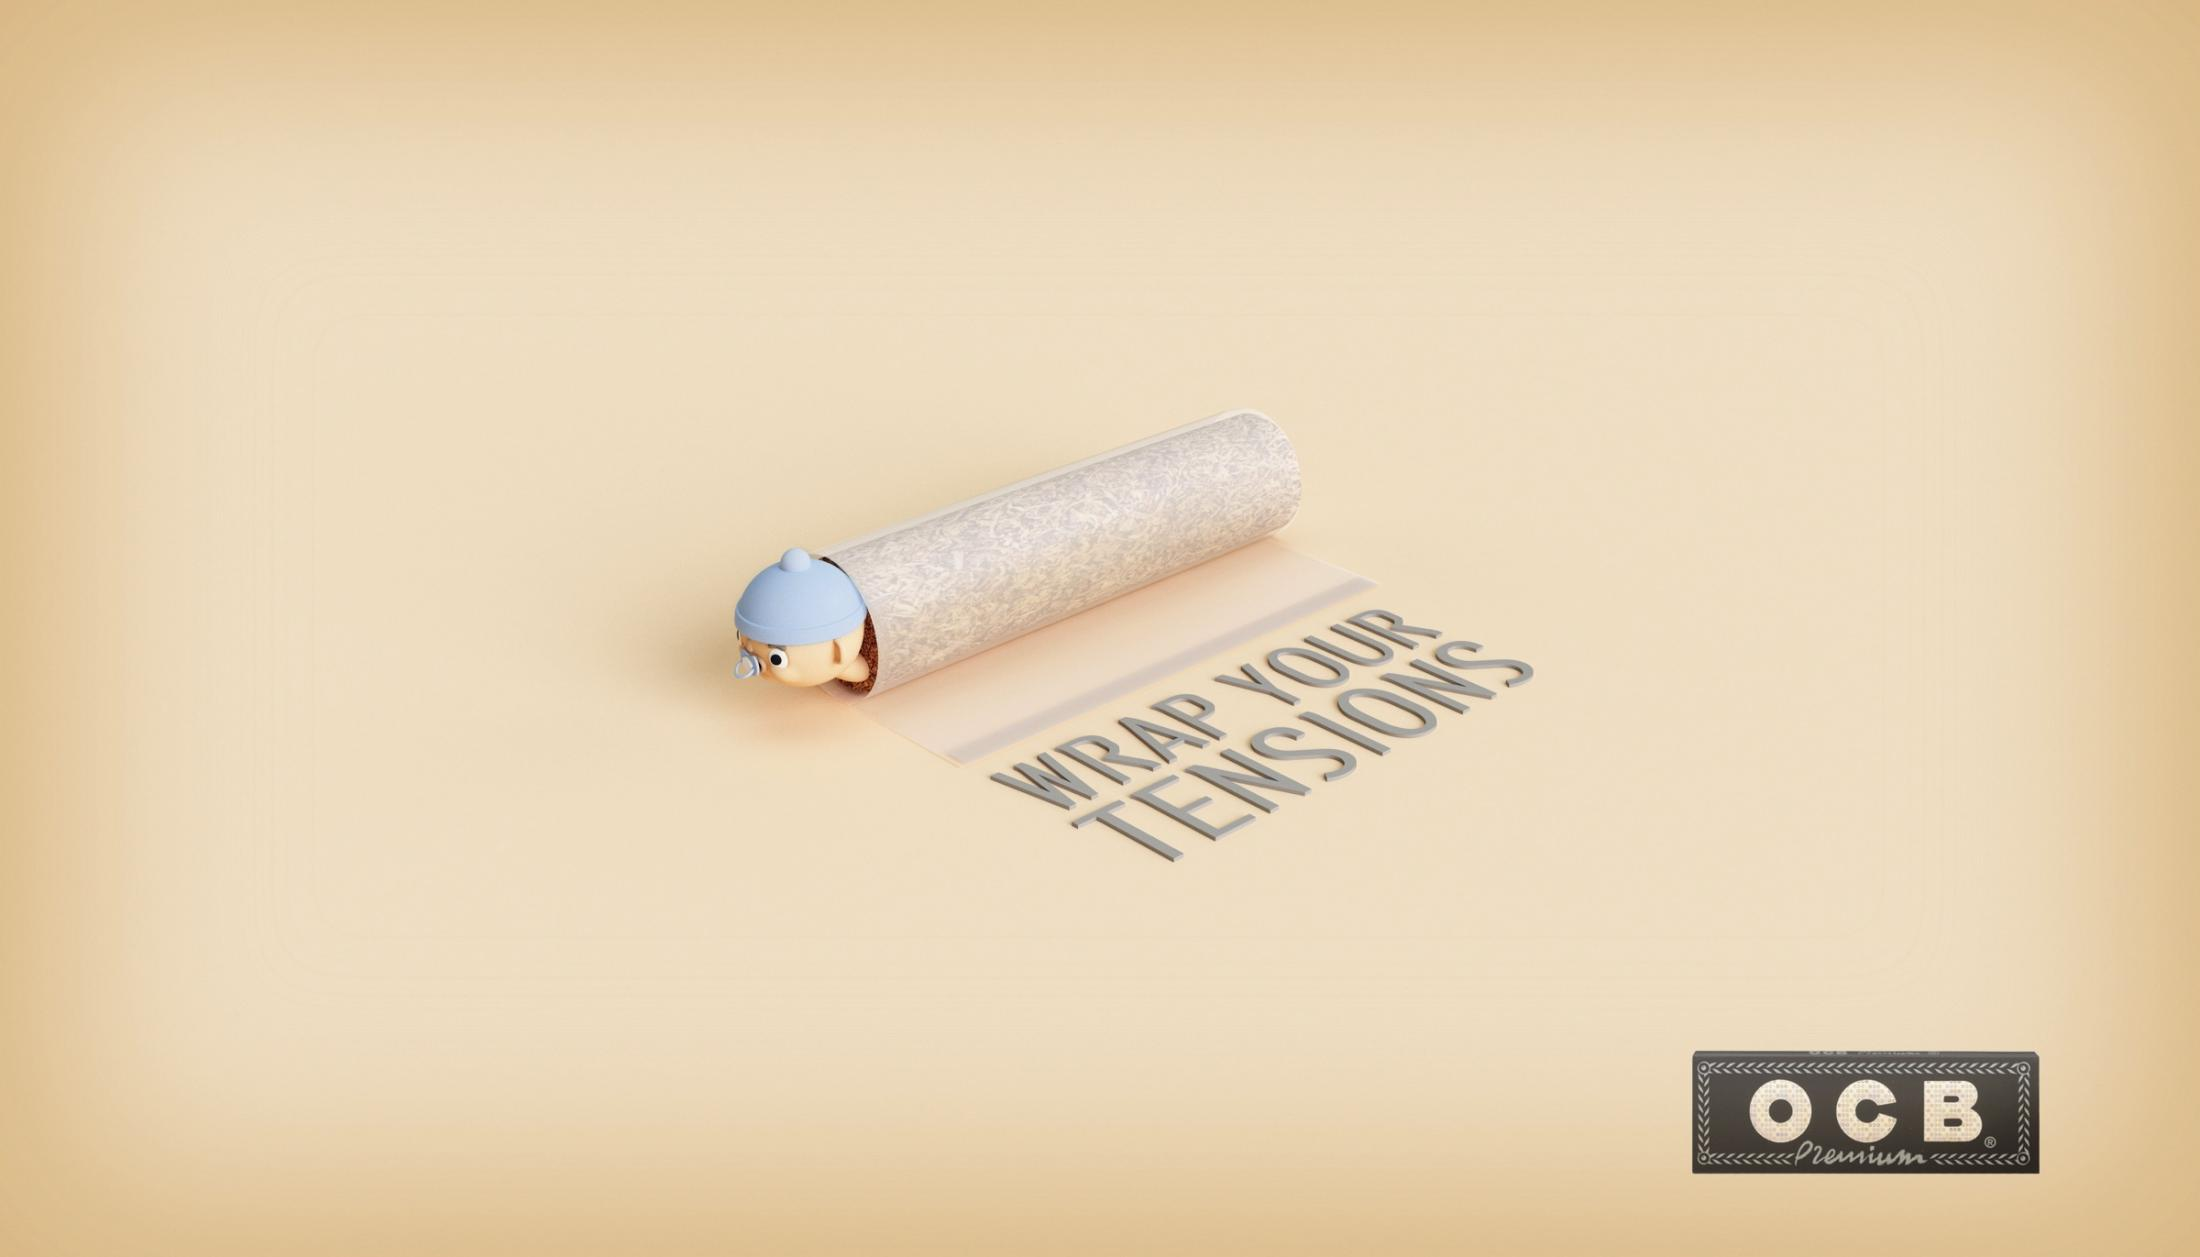 OCB Print Ad - Wrap Your Tensions - Baby